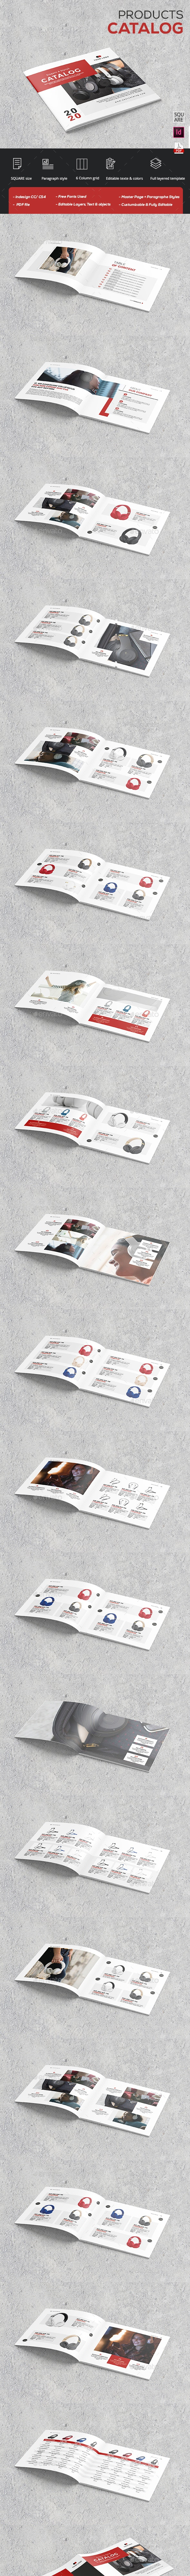 Square Catalog Products Brochure - Catalogs Brochures